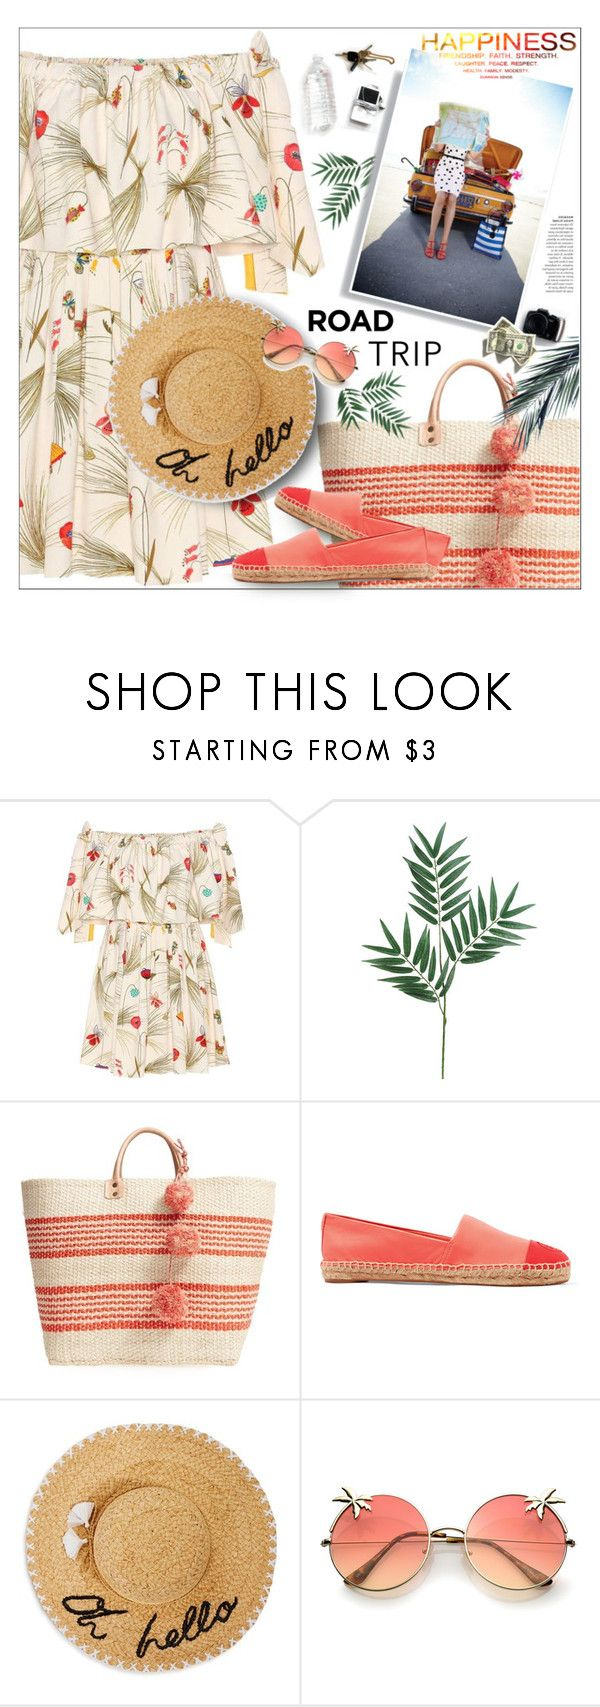 """Towards the sun"" by mari-meri ❤ liked on Polyvore featuring Fendi, Mar y Sol, Tory Burch and Kate Spade"